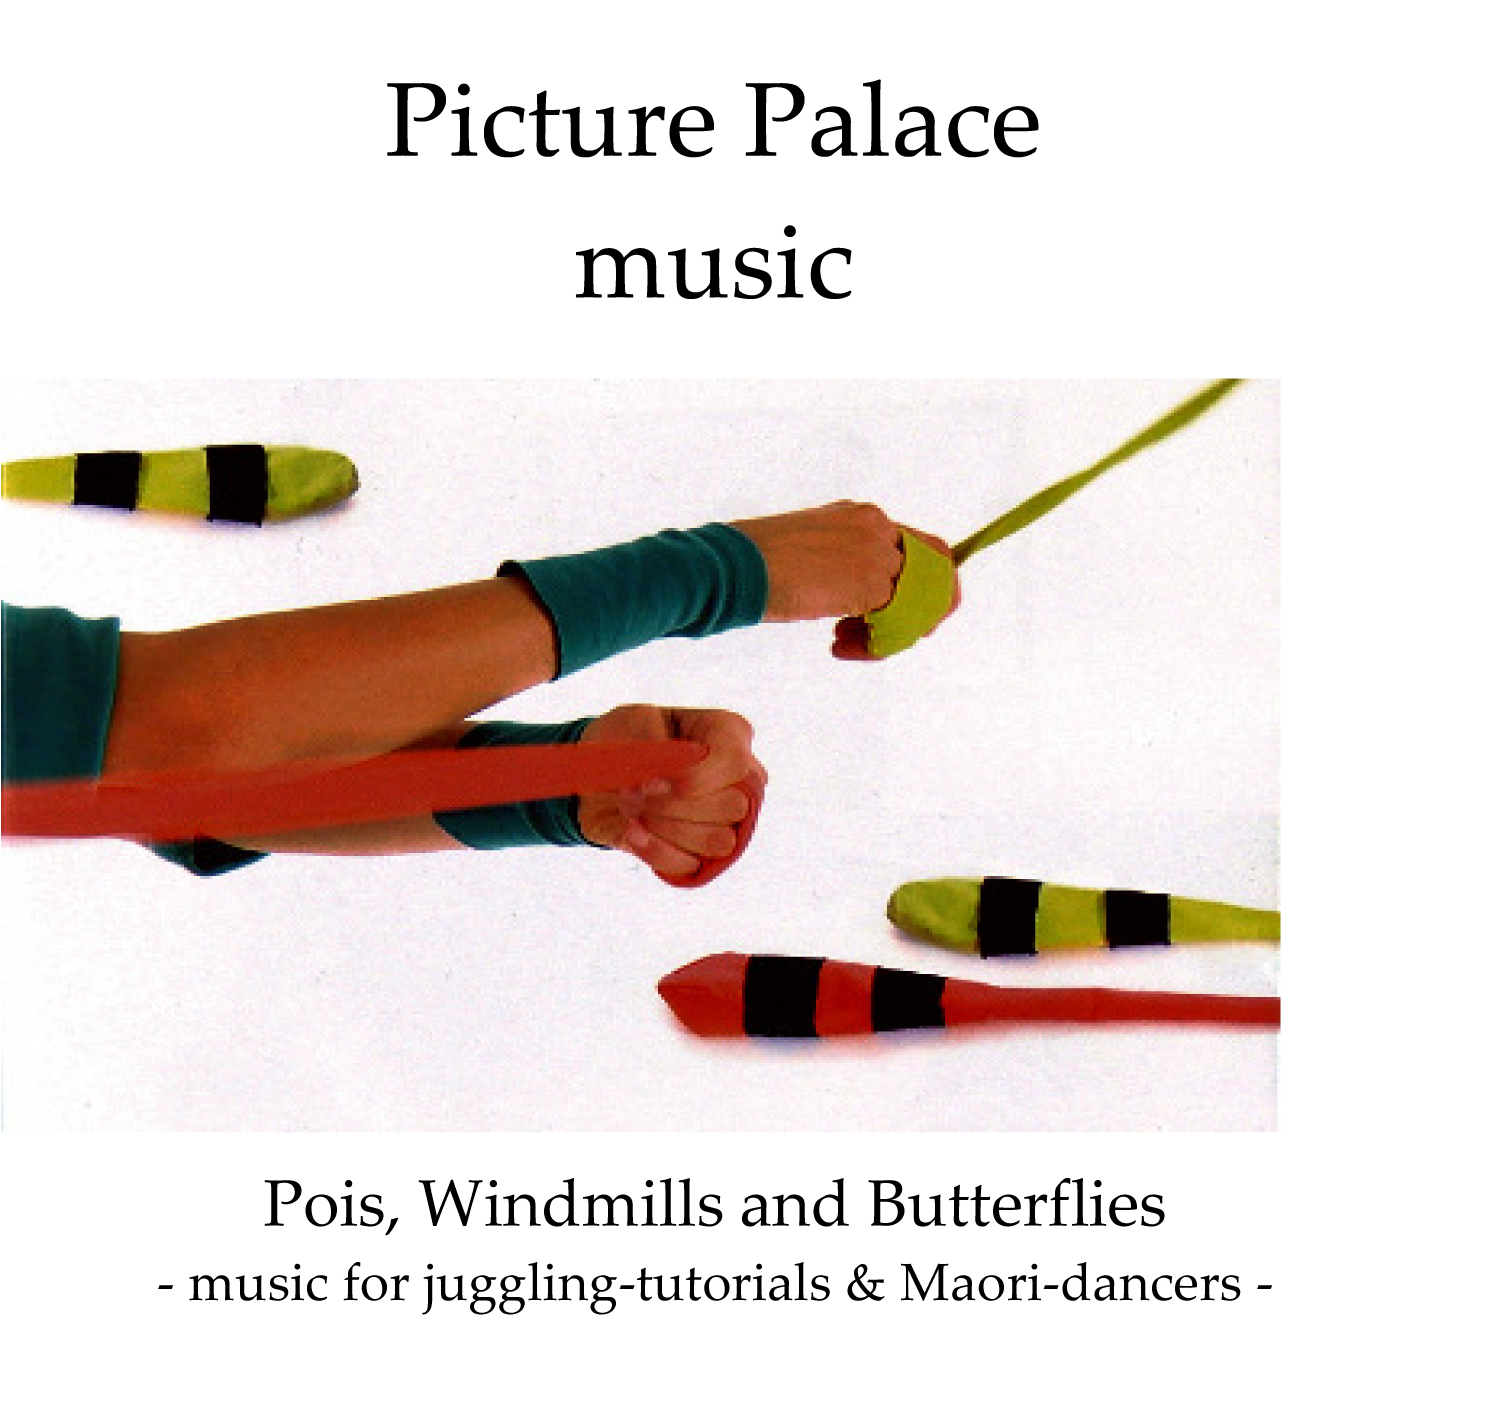 Pois Windmills and Butterflies